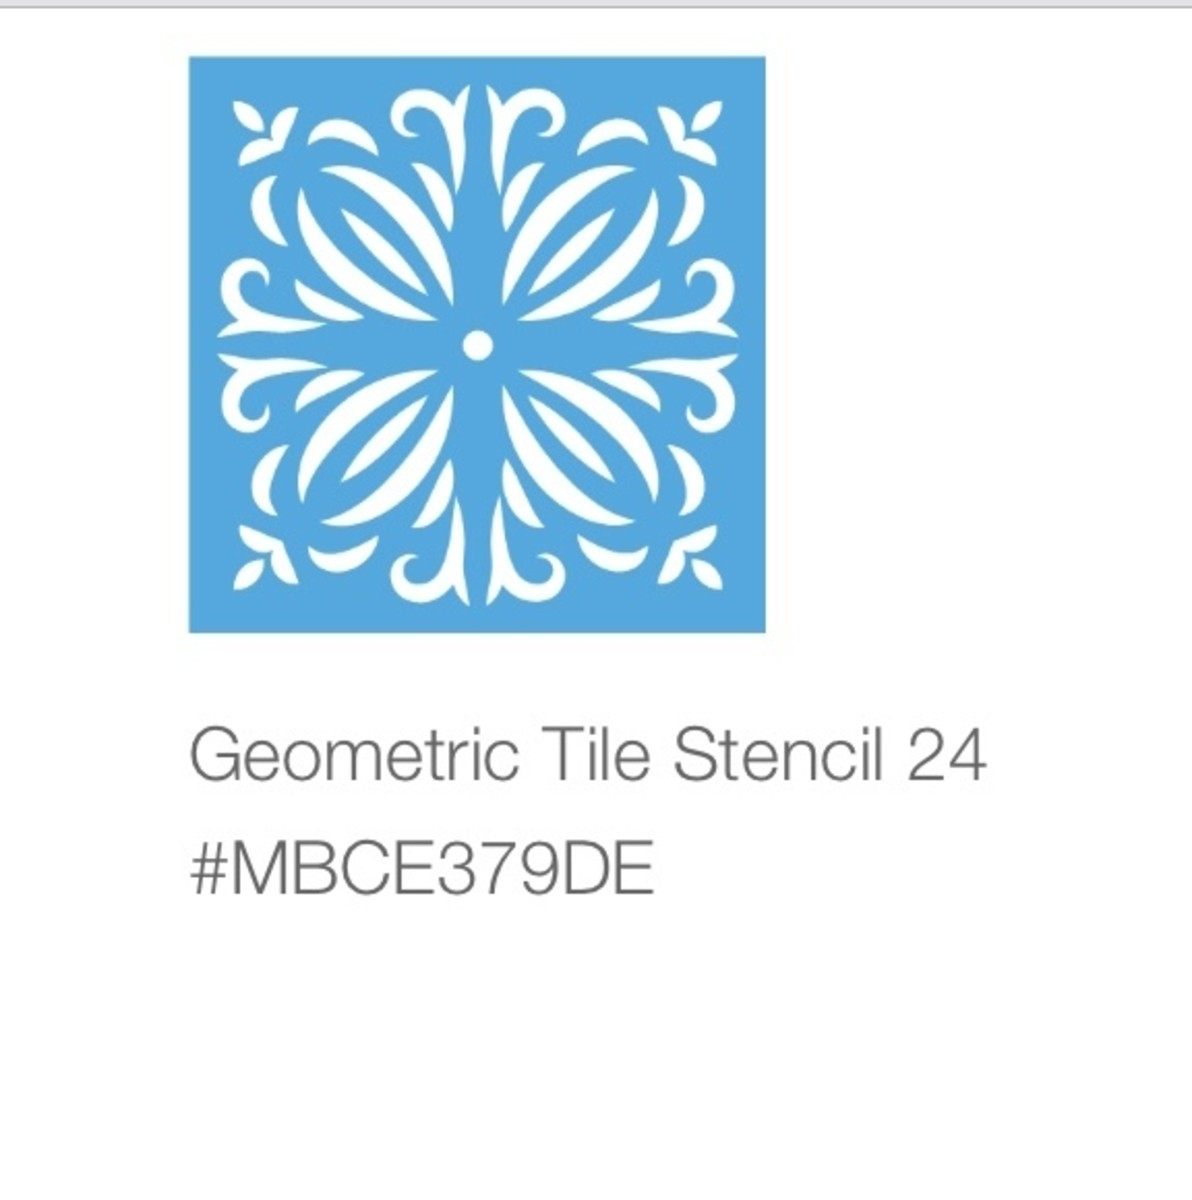 This is the tile pattern I used for my project.  It is available in Cricut design space.